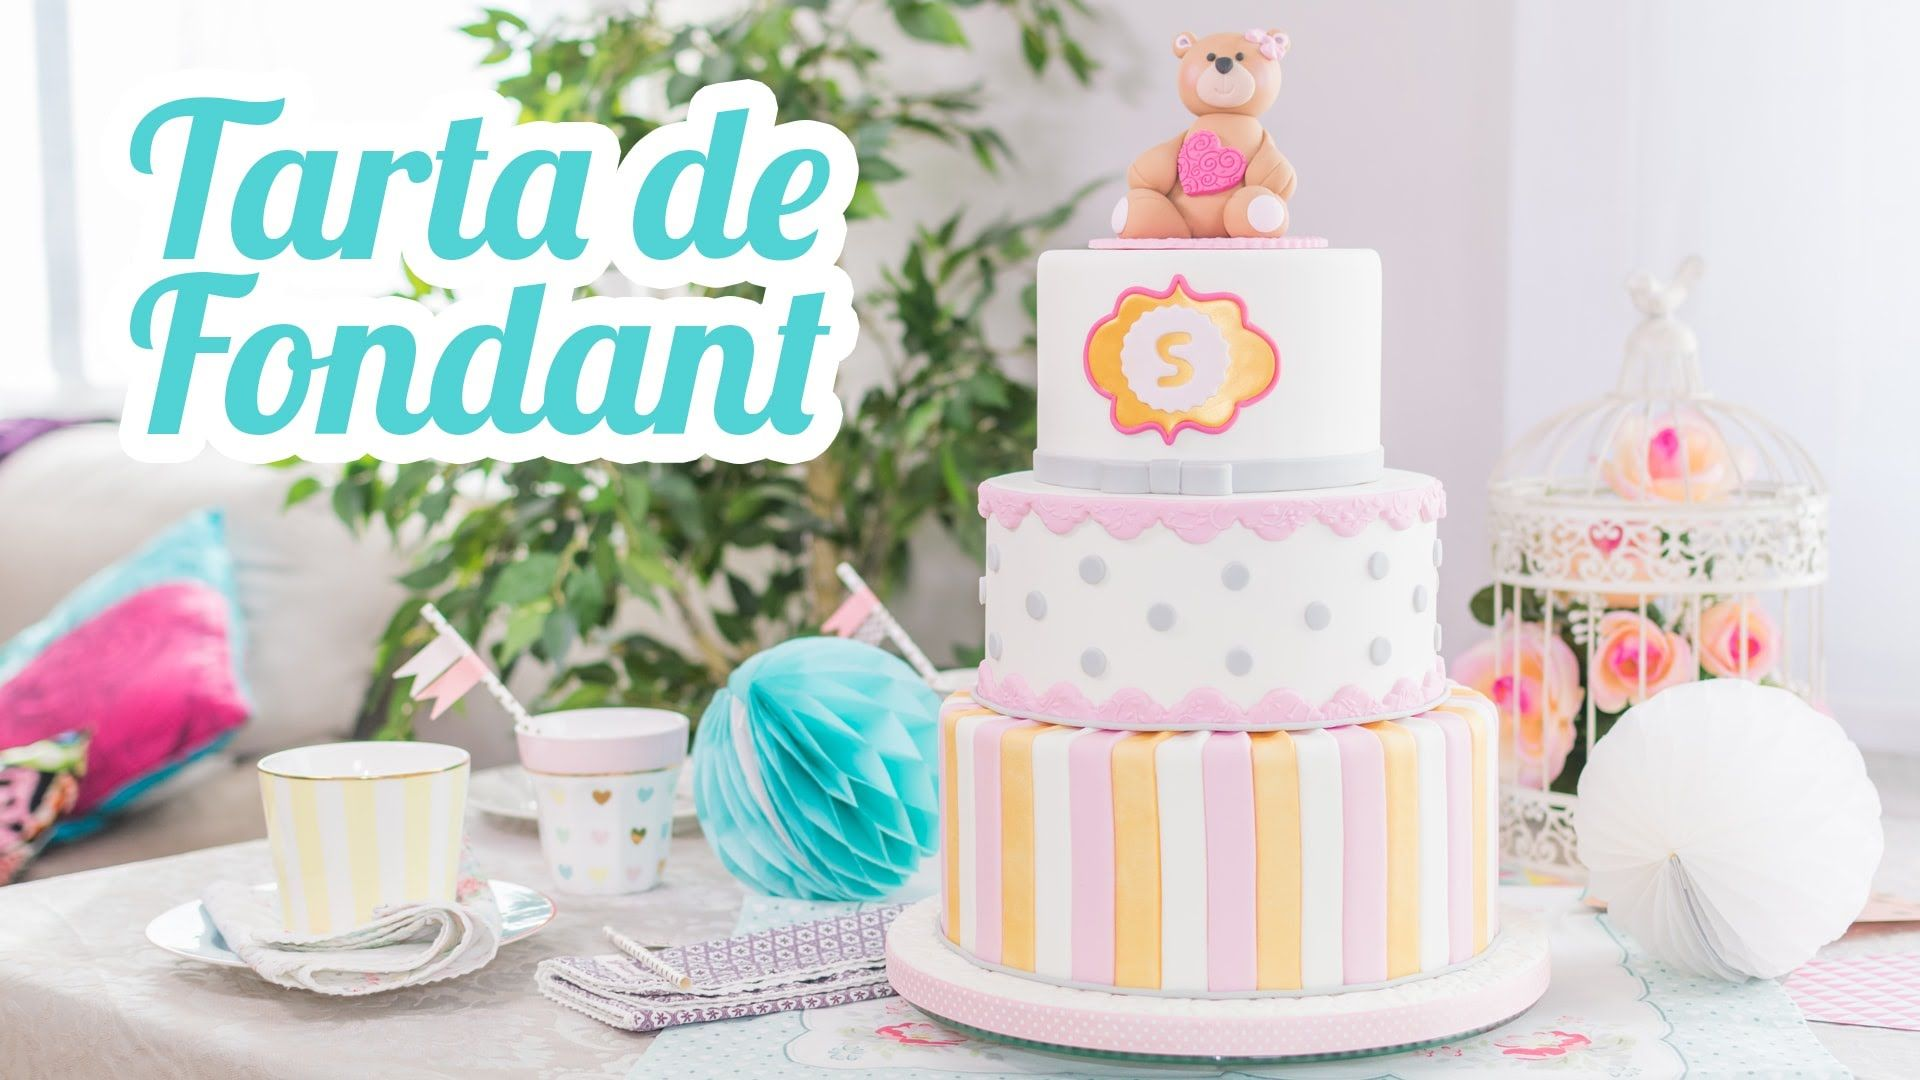 Como Decorar Una Tarta Video Cómo Decorar Una Tarta Con De Fondant Mesa Para